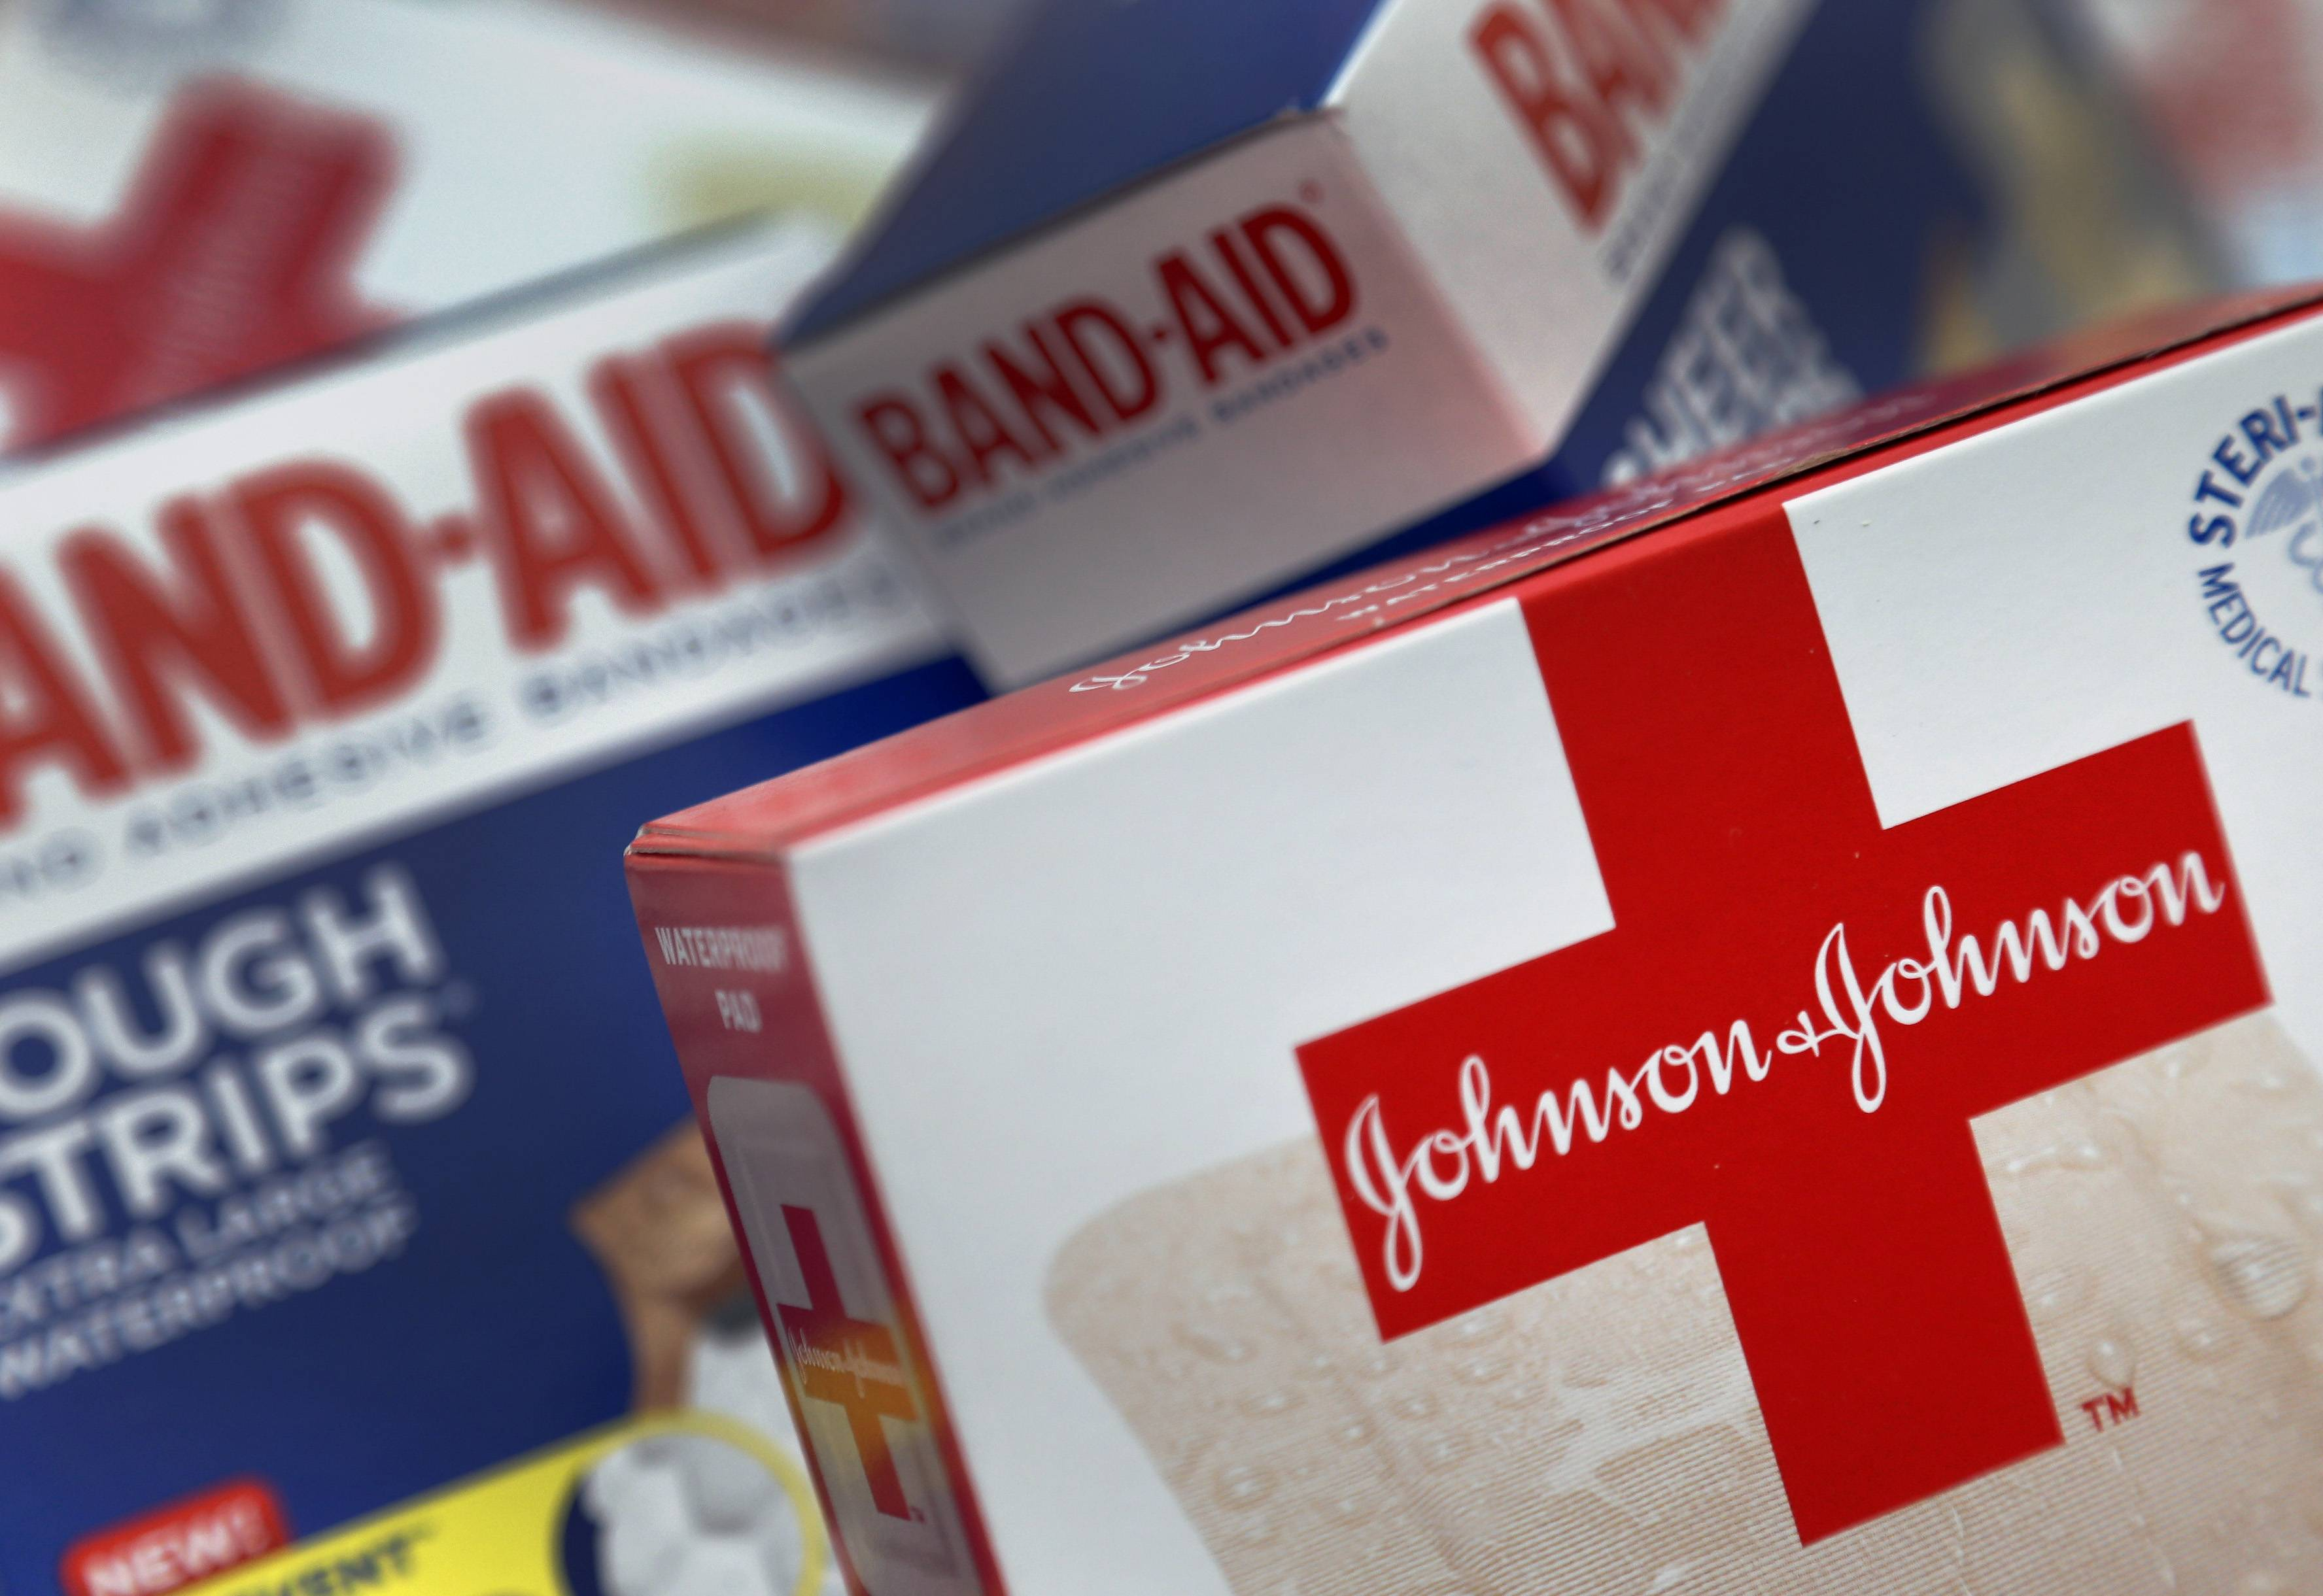 Johnson & Johnson's first-quarter profit rose 8 percent, because of restrained costs and a big jump in prescription drug sales. The world's biggest maker of health care products easily beat Wall Street expectations and raised its earnings outlook, driving up its shares to a new high for the year.